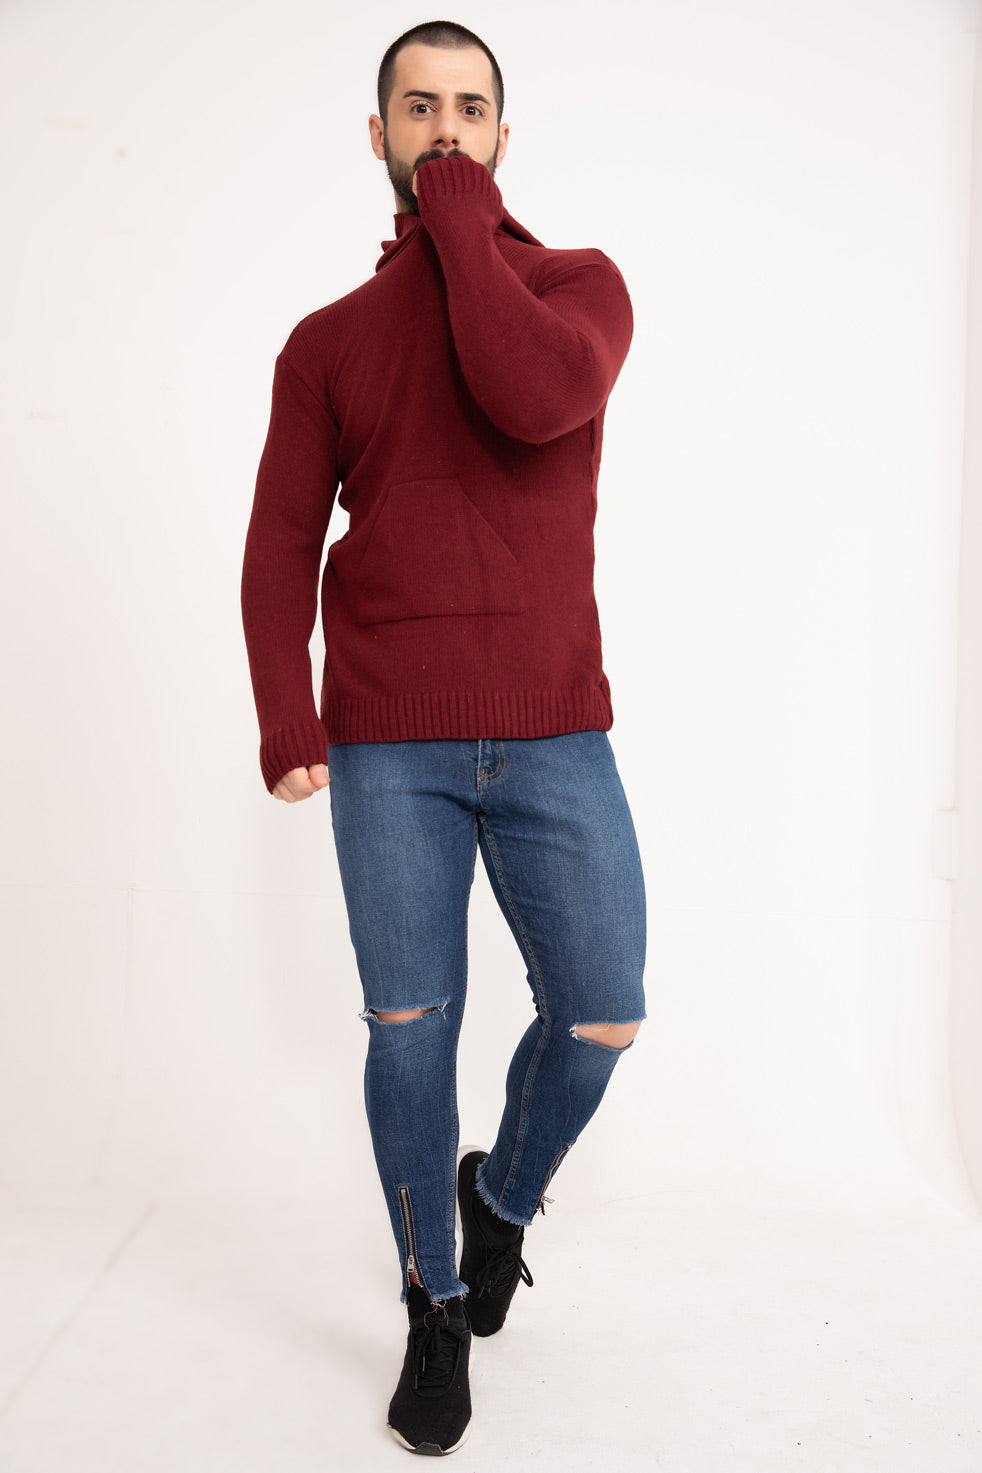 Burgundy Hooded Men's Knitwear Sweater